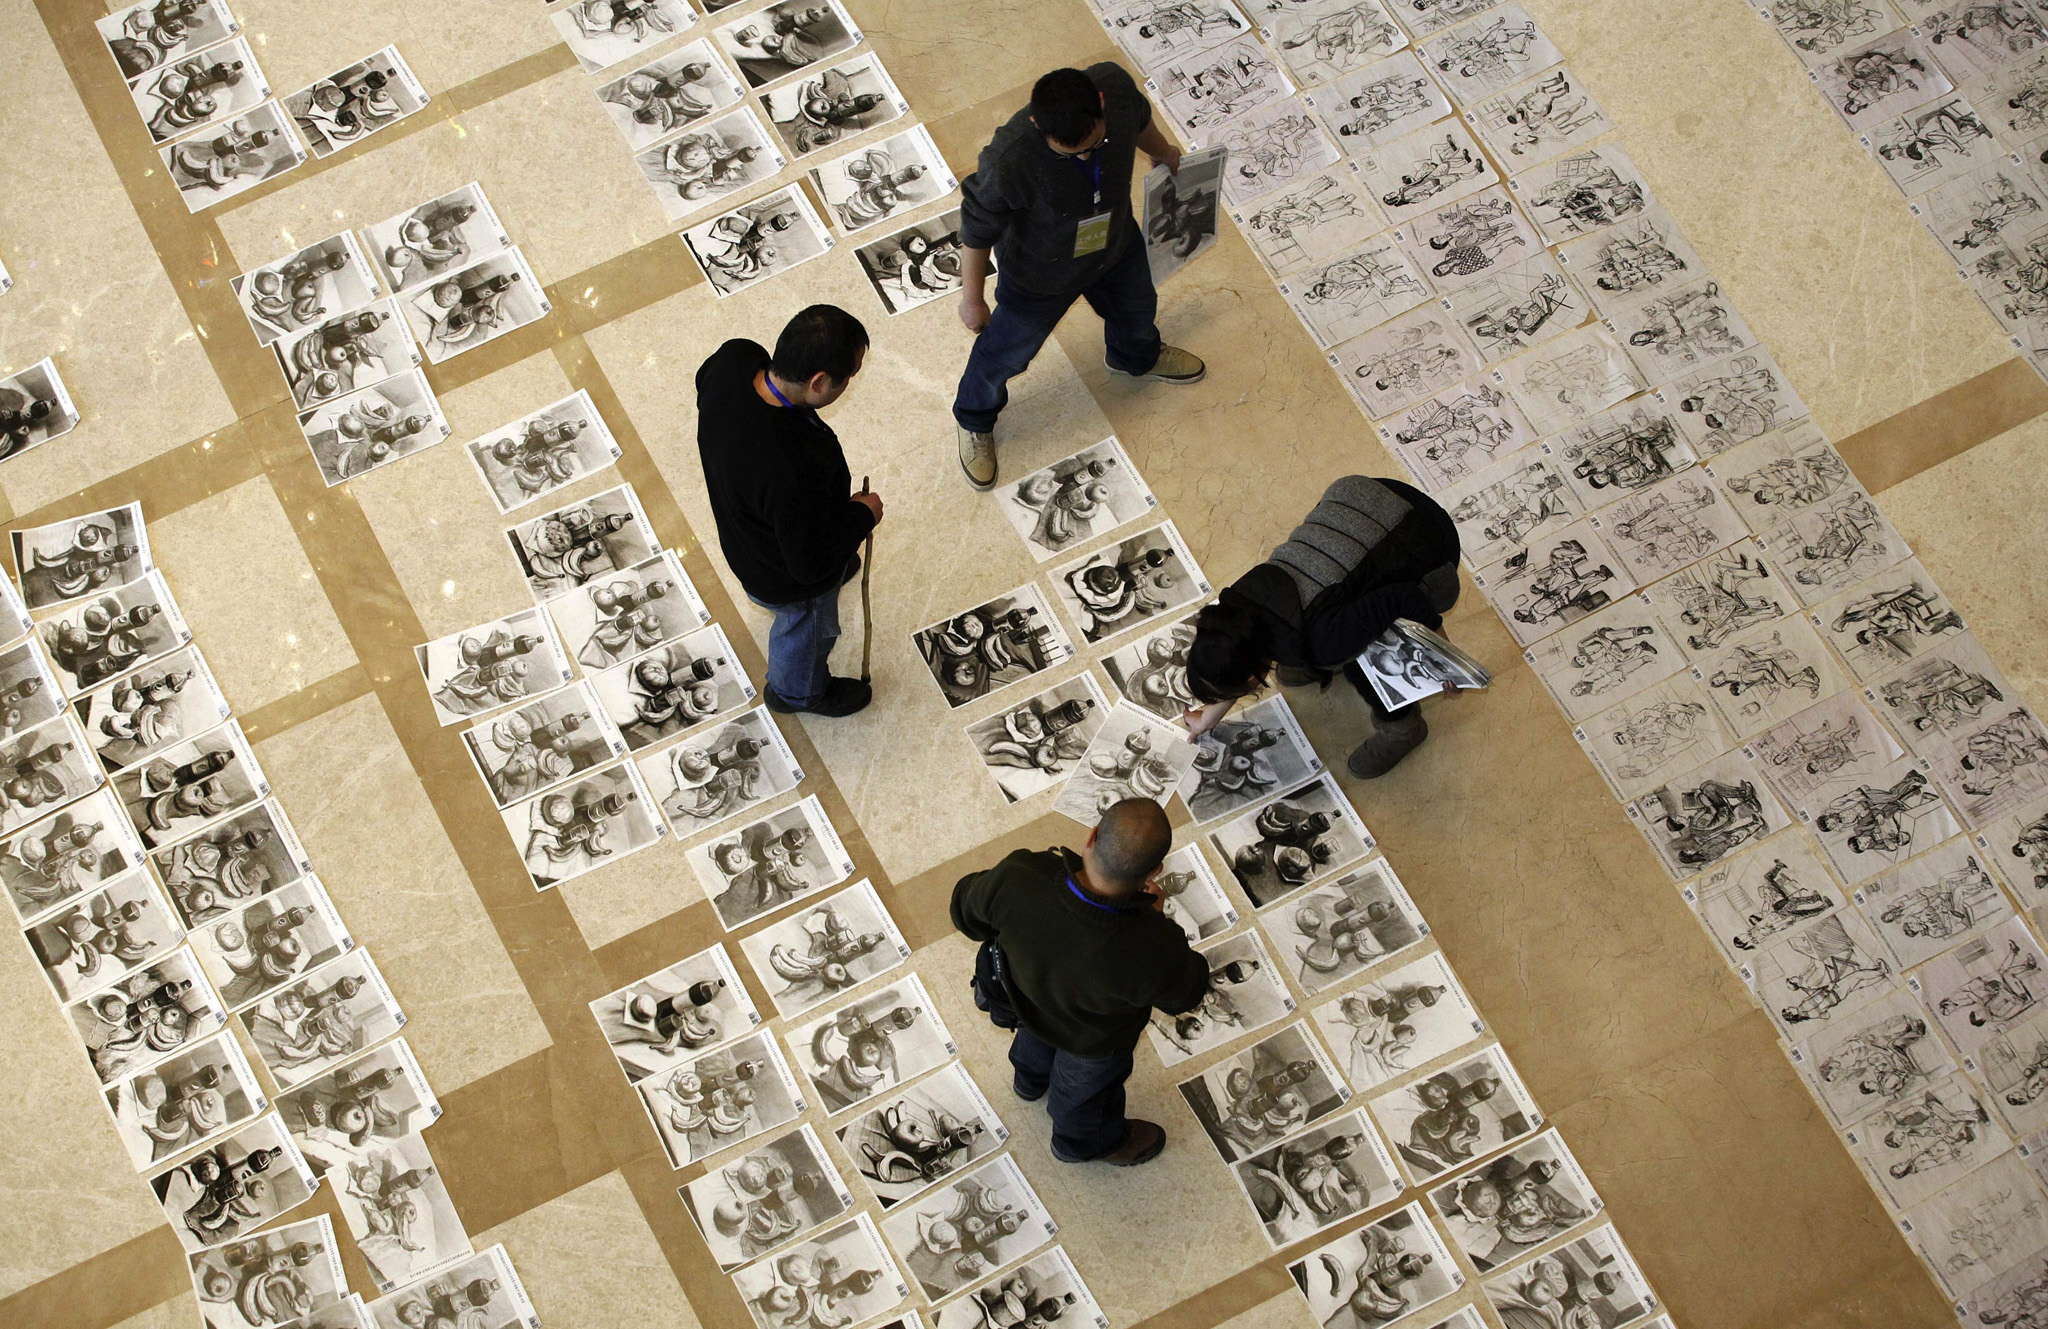 Exam markers inspect students' exam papers for the national college entrance examination to the higher academy of fine arts at the paper inspection site in Xi'an, Shaanxi province, China.